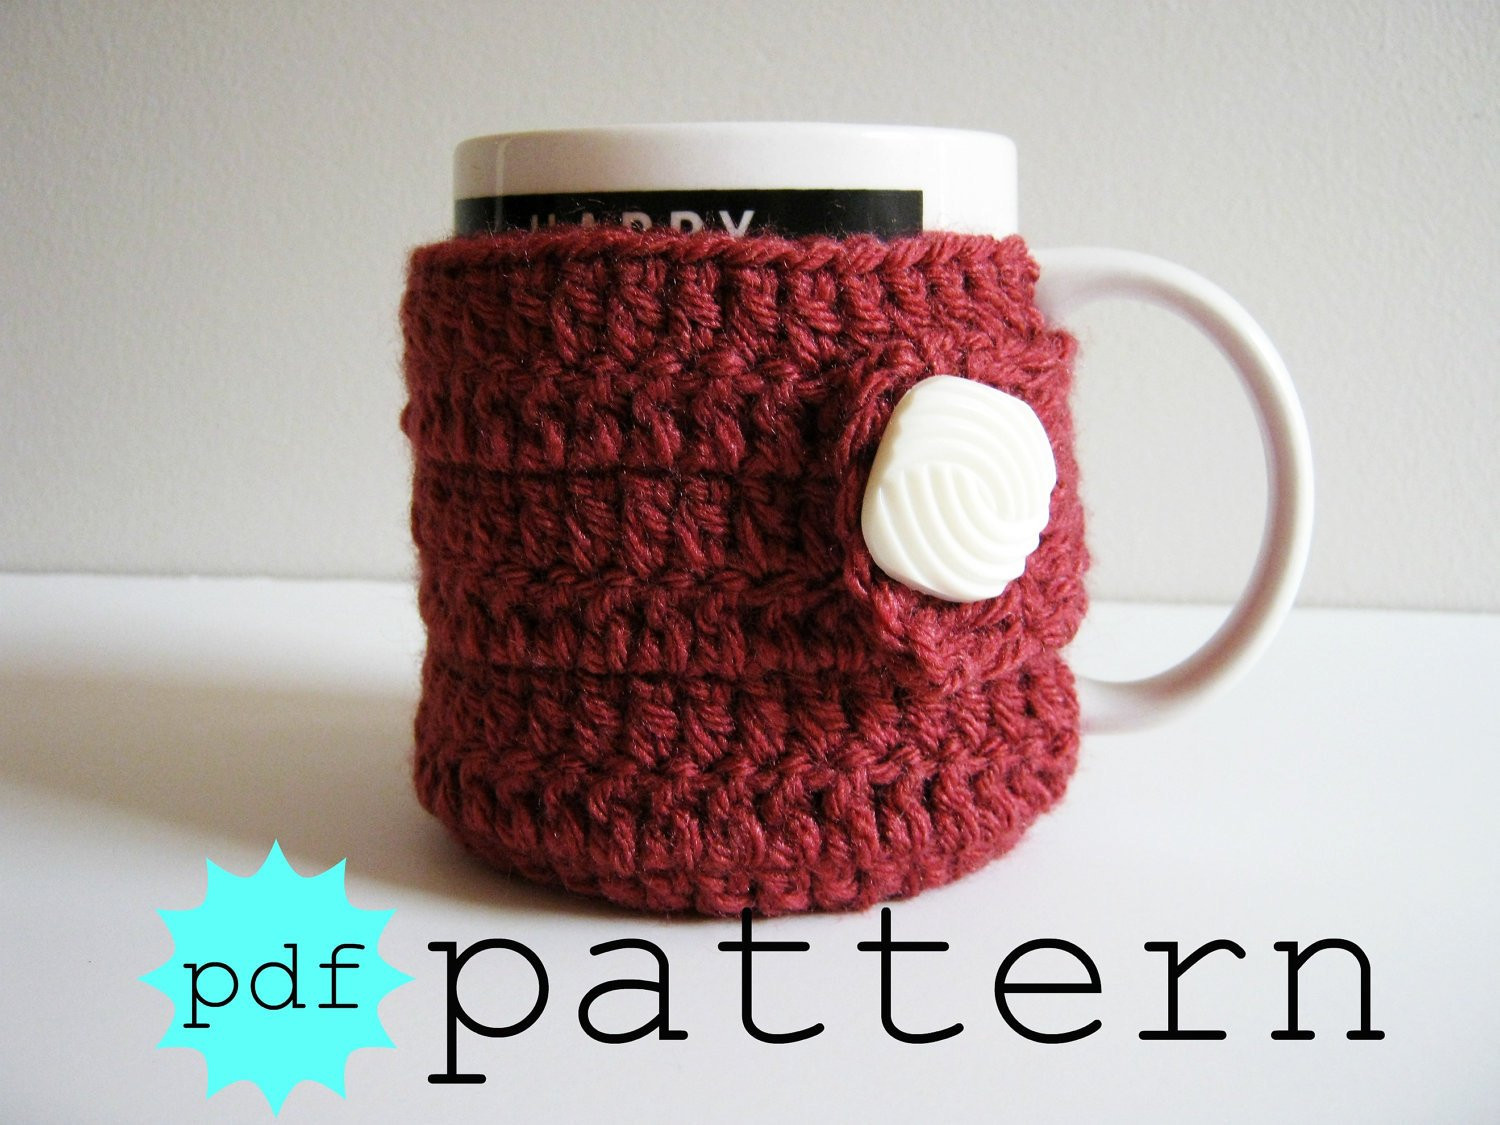 Crochet Coffee Cup Cozy Luxury Pdf Crochet Pattern Coffee Mug Cozy with button by Of Crochet Coffee Cup Cozy Fresh Creativity Awaits Crochet Coffee Cozy Patterns Stitch